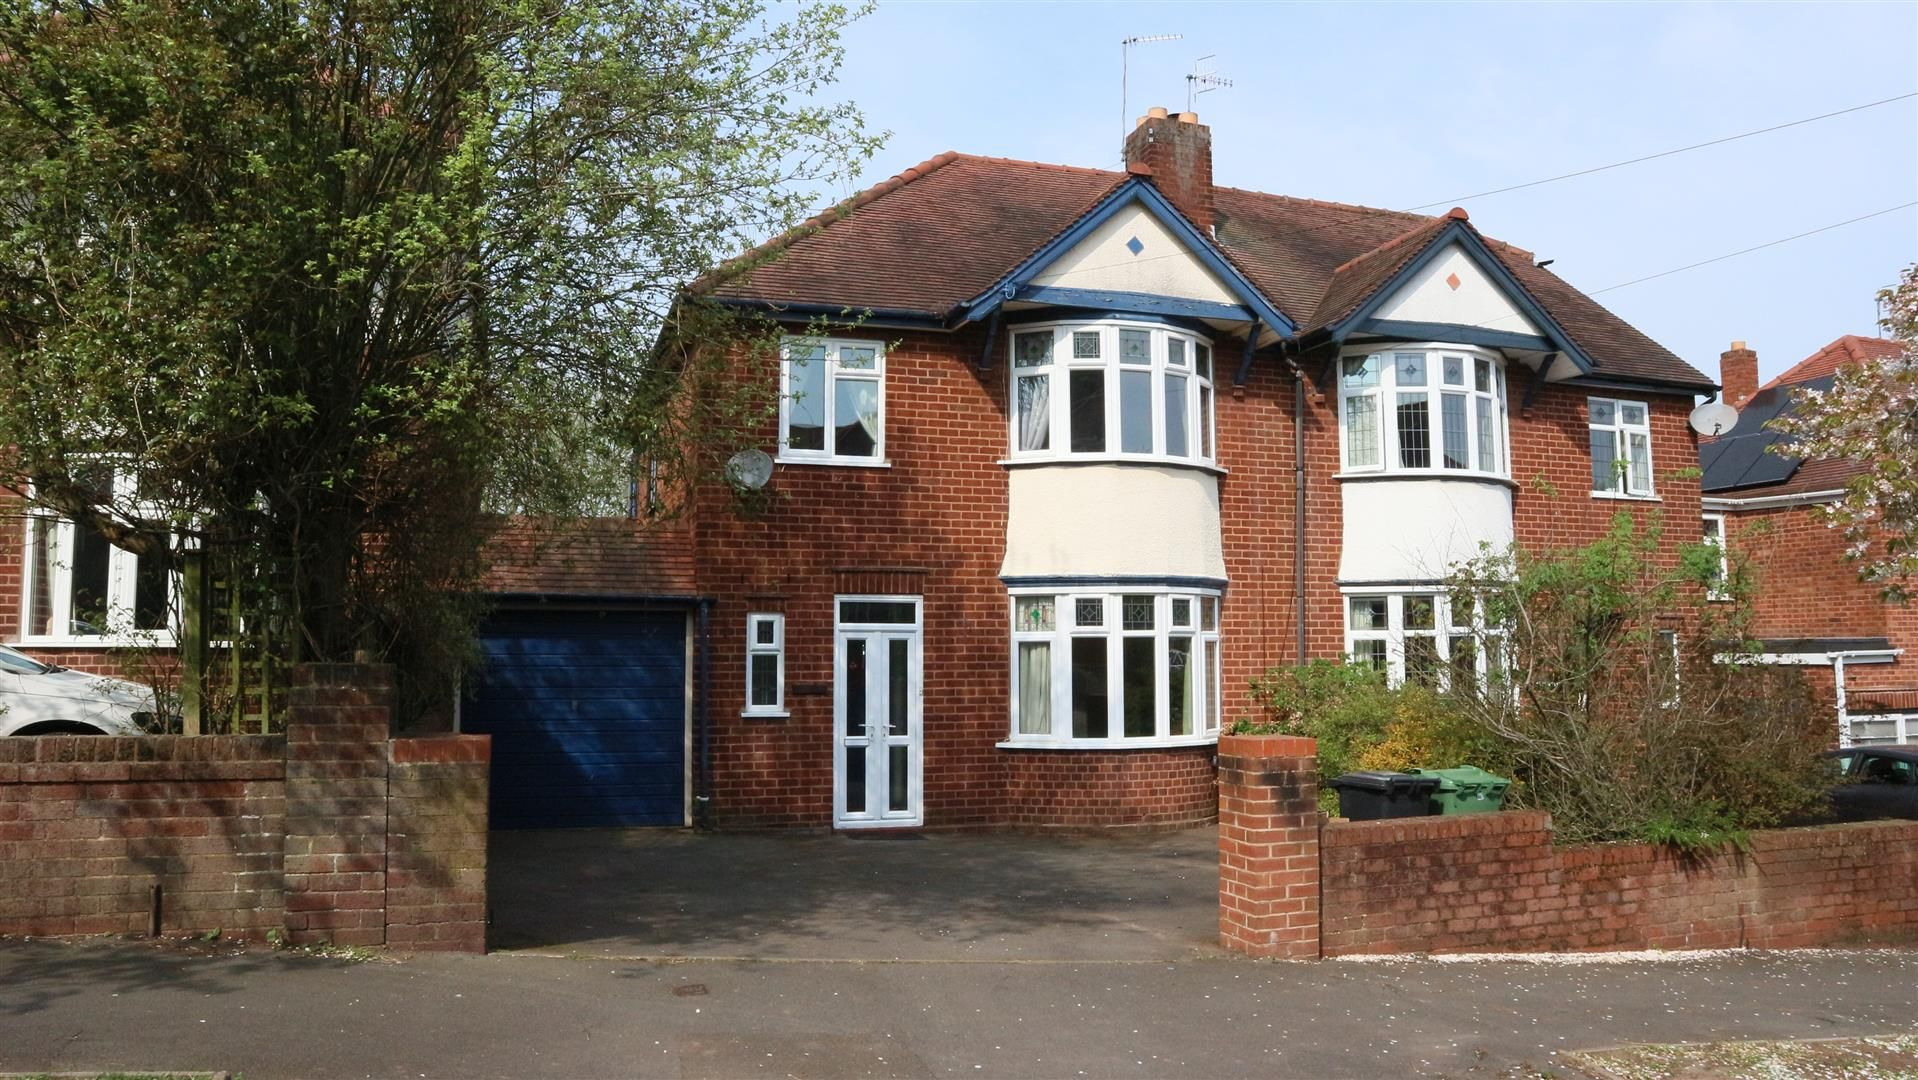 3 bed semi-detached for sale in Pedmore, DY9